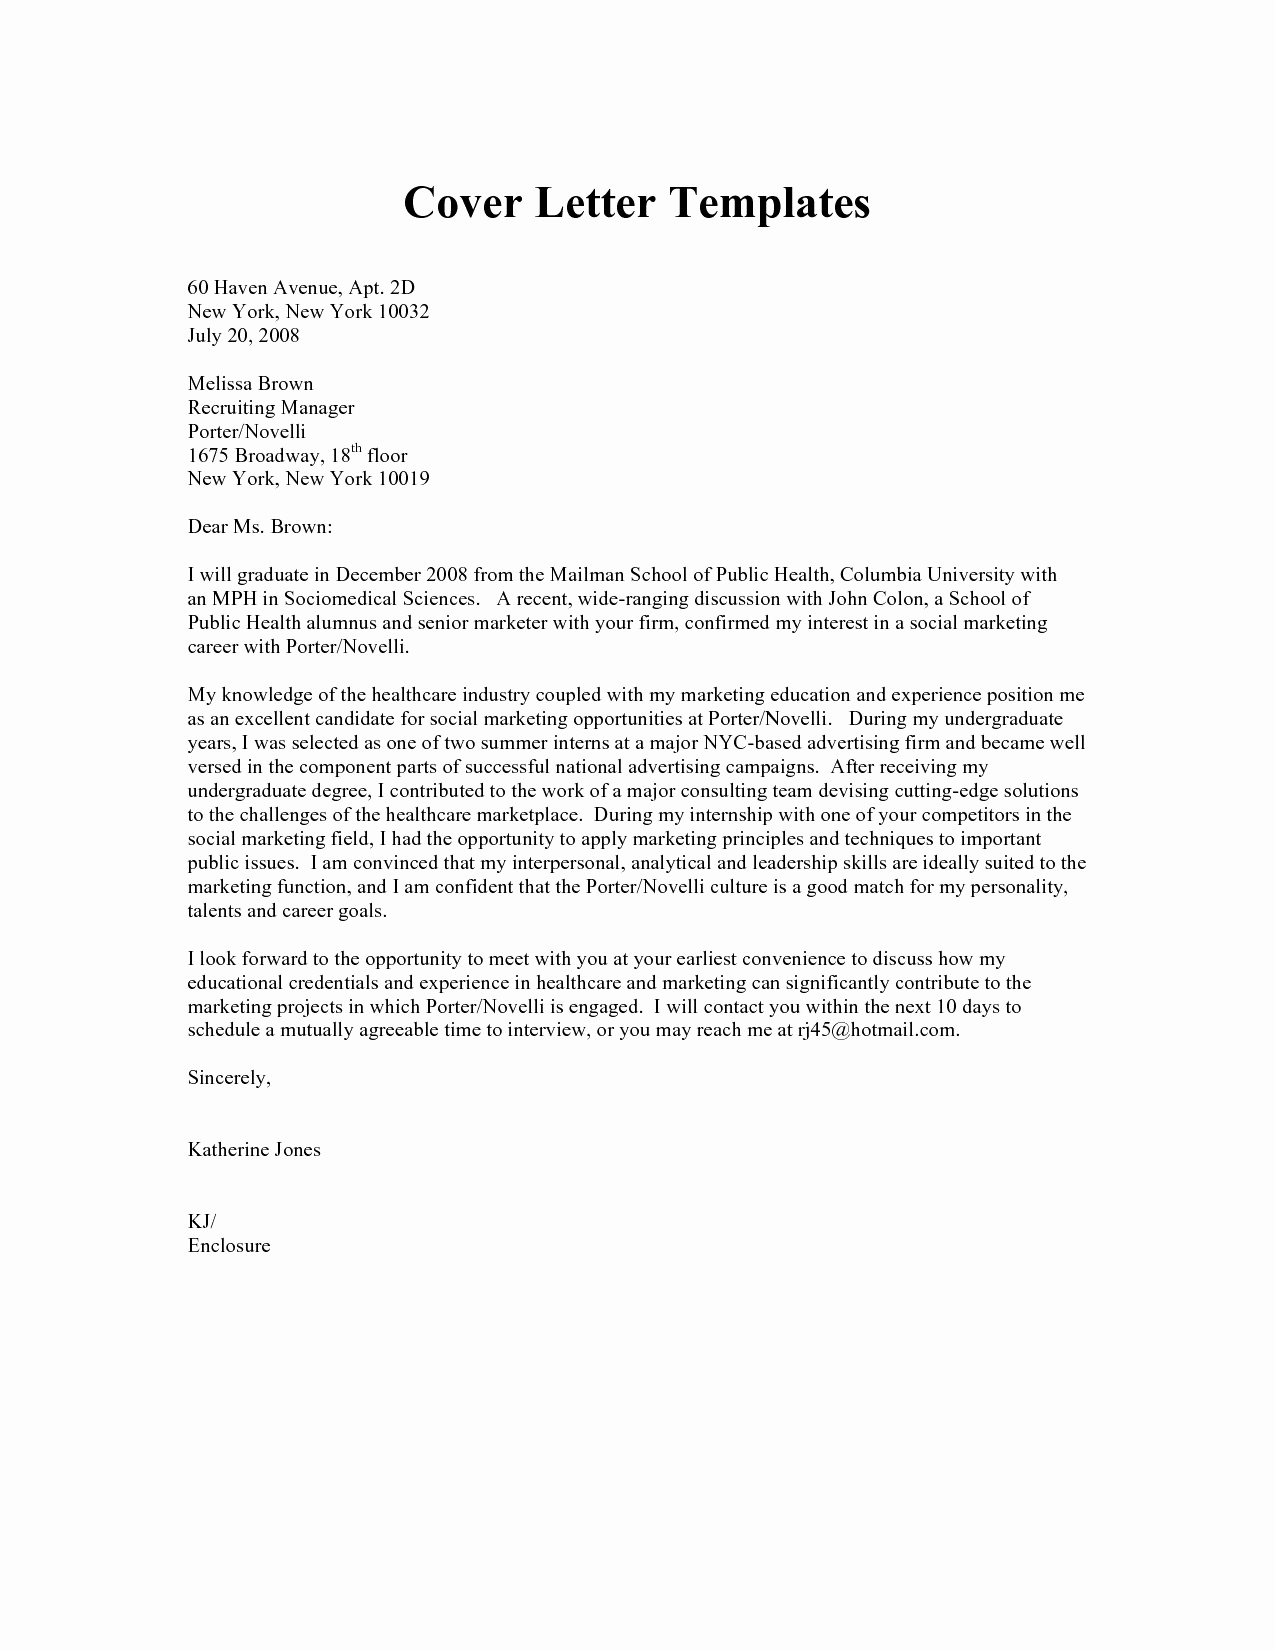 Recruitment Letter Template - Recruitment Consultant Cover Letter Example Unique Od Consultant